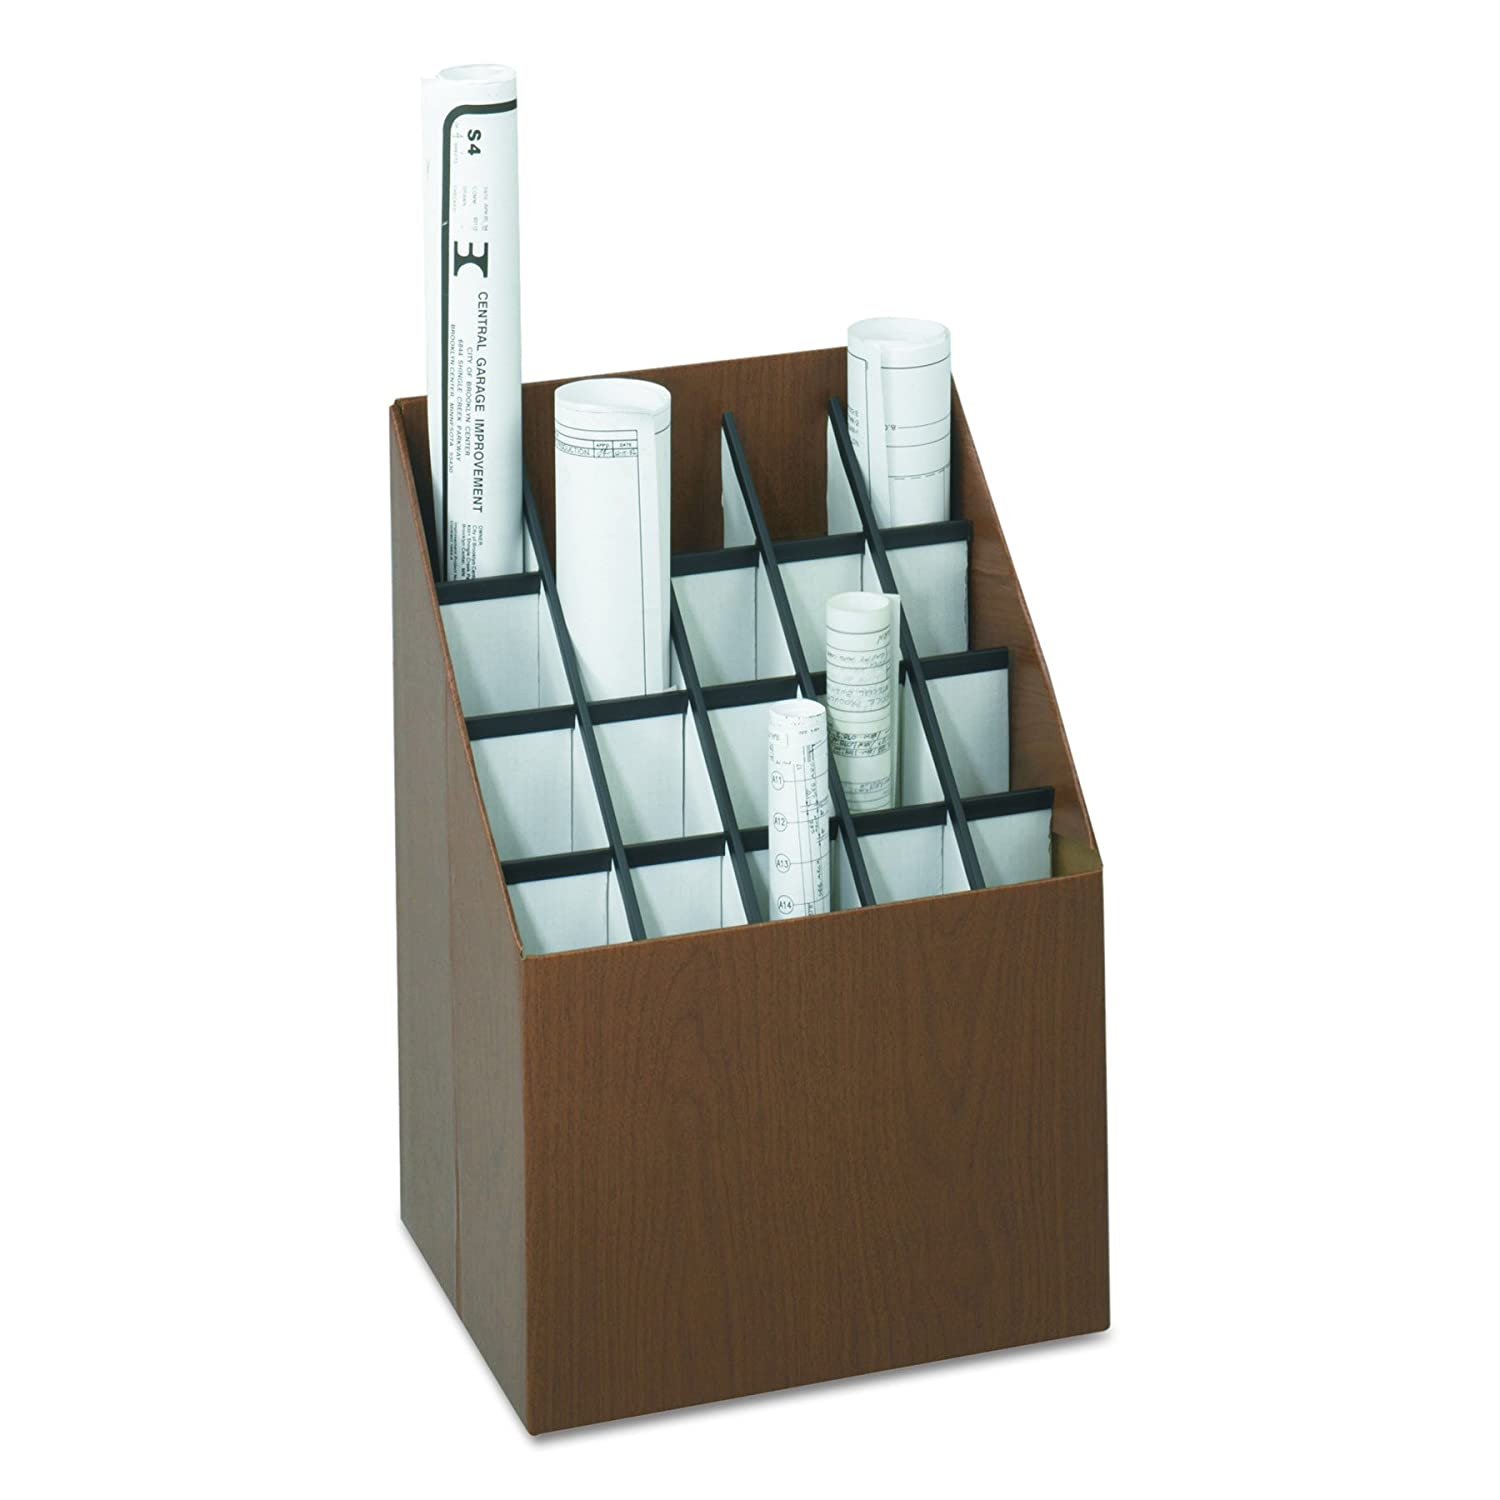 Amazon.com: Safco Products 3081 Vertical Roll File, 20 Compartment, Walnut:  Kitchen & Dining